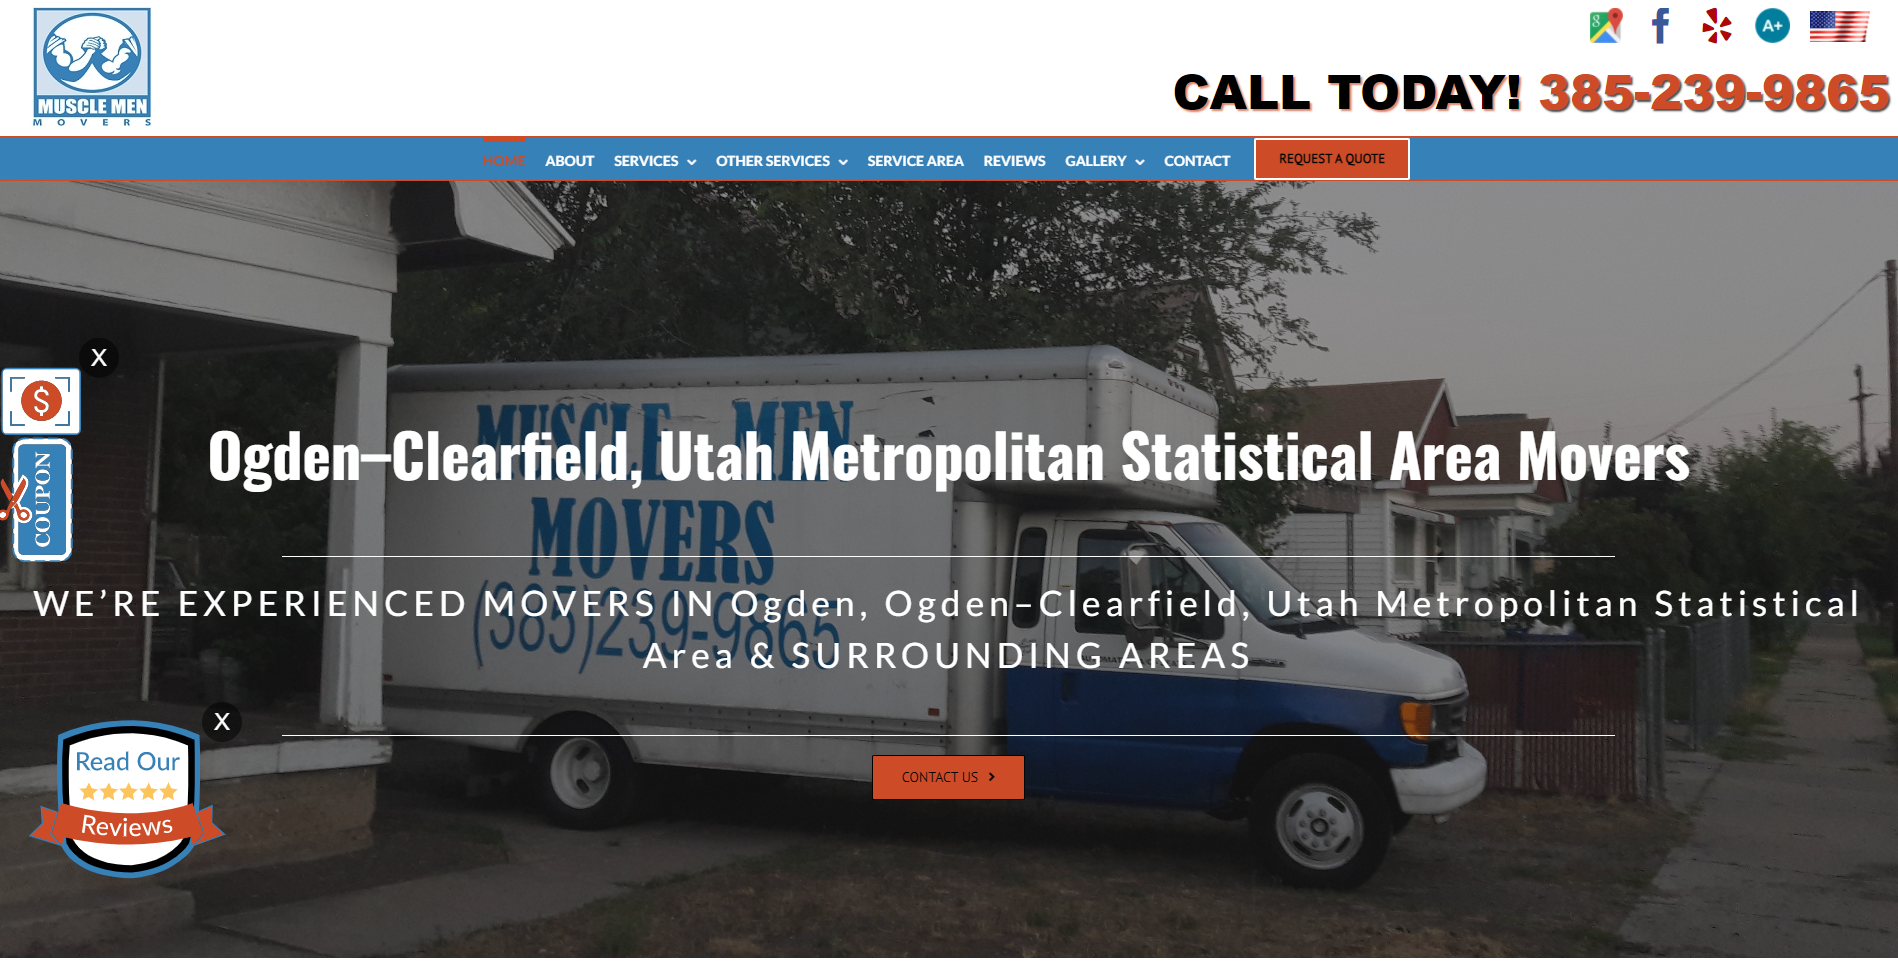 Website Marketing for Movers